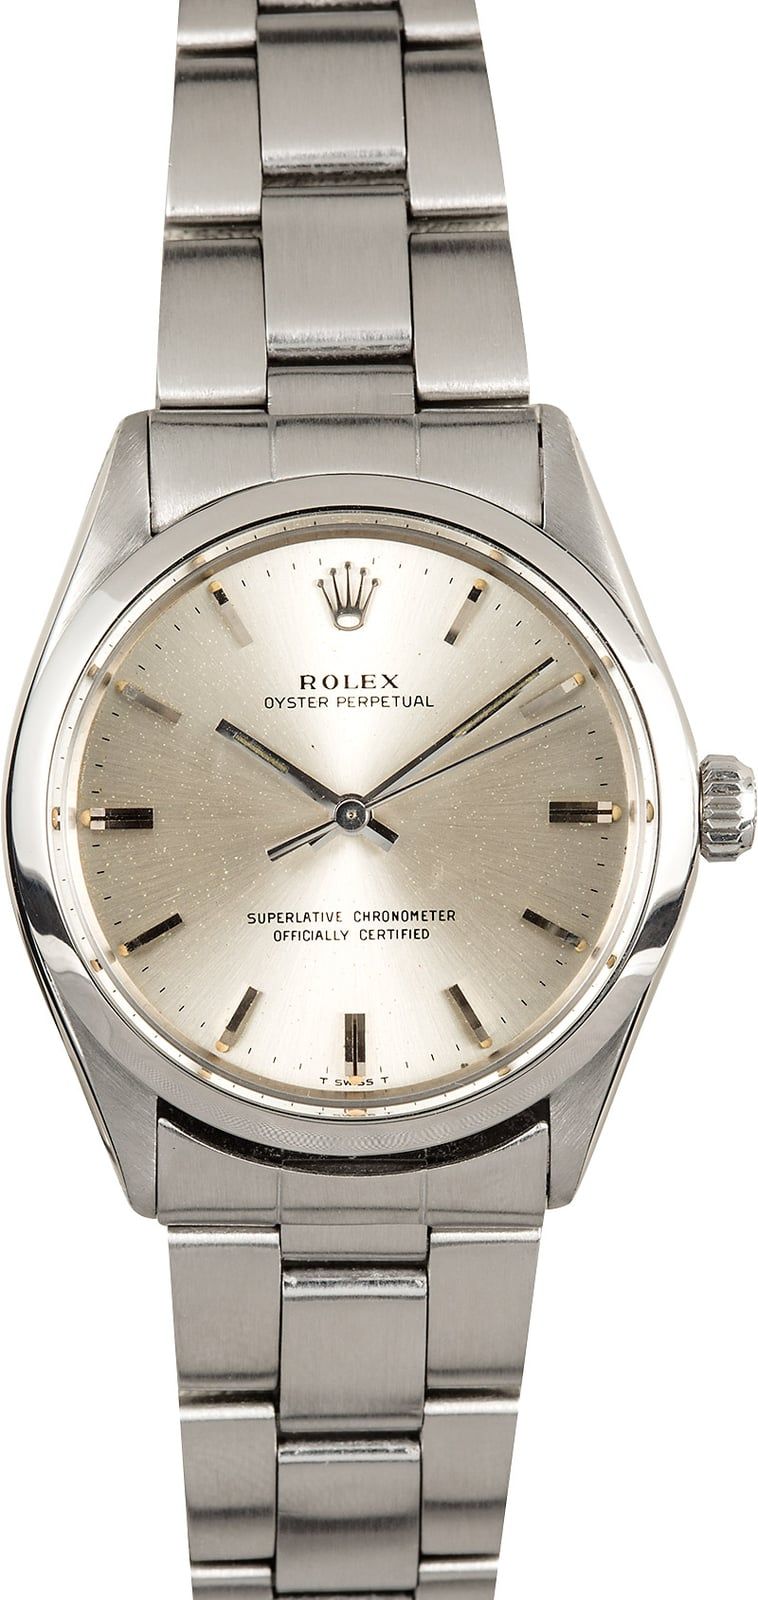 the scale false platinum crop in watch perpetual watches lady upscale rolex product oyster subsampling shop datejust